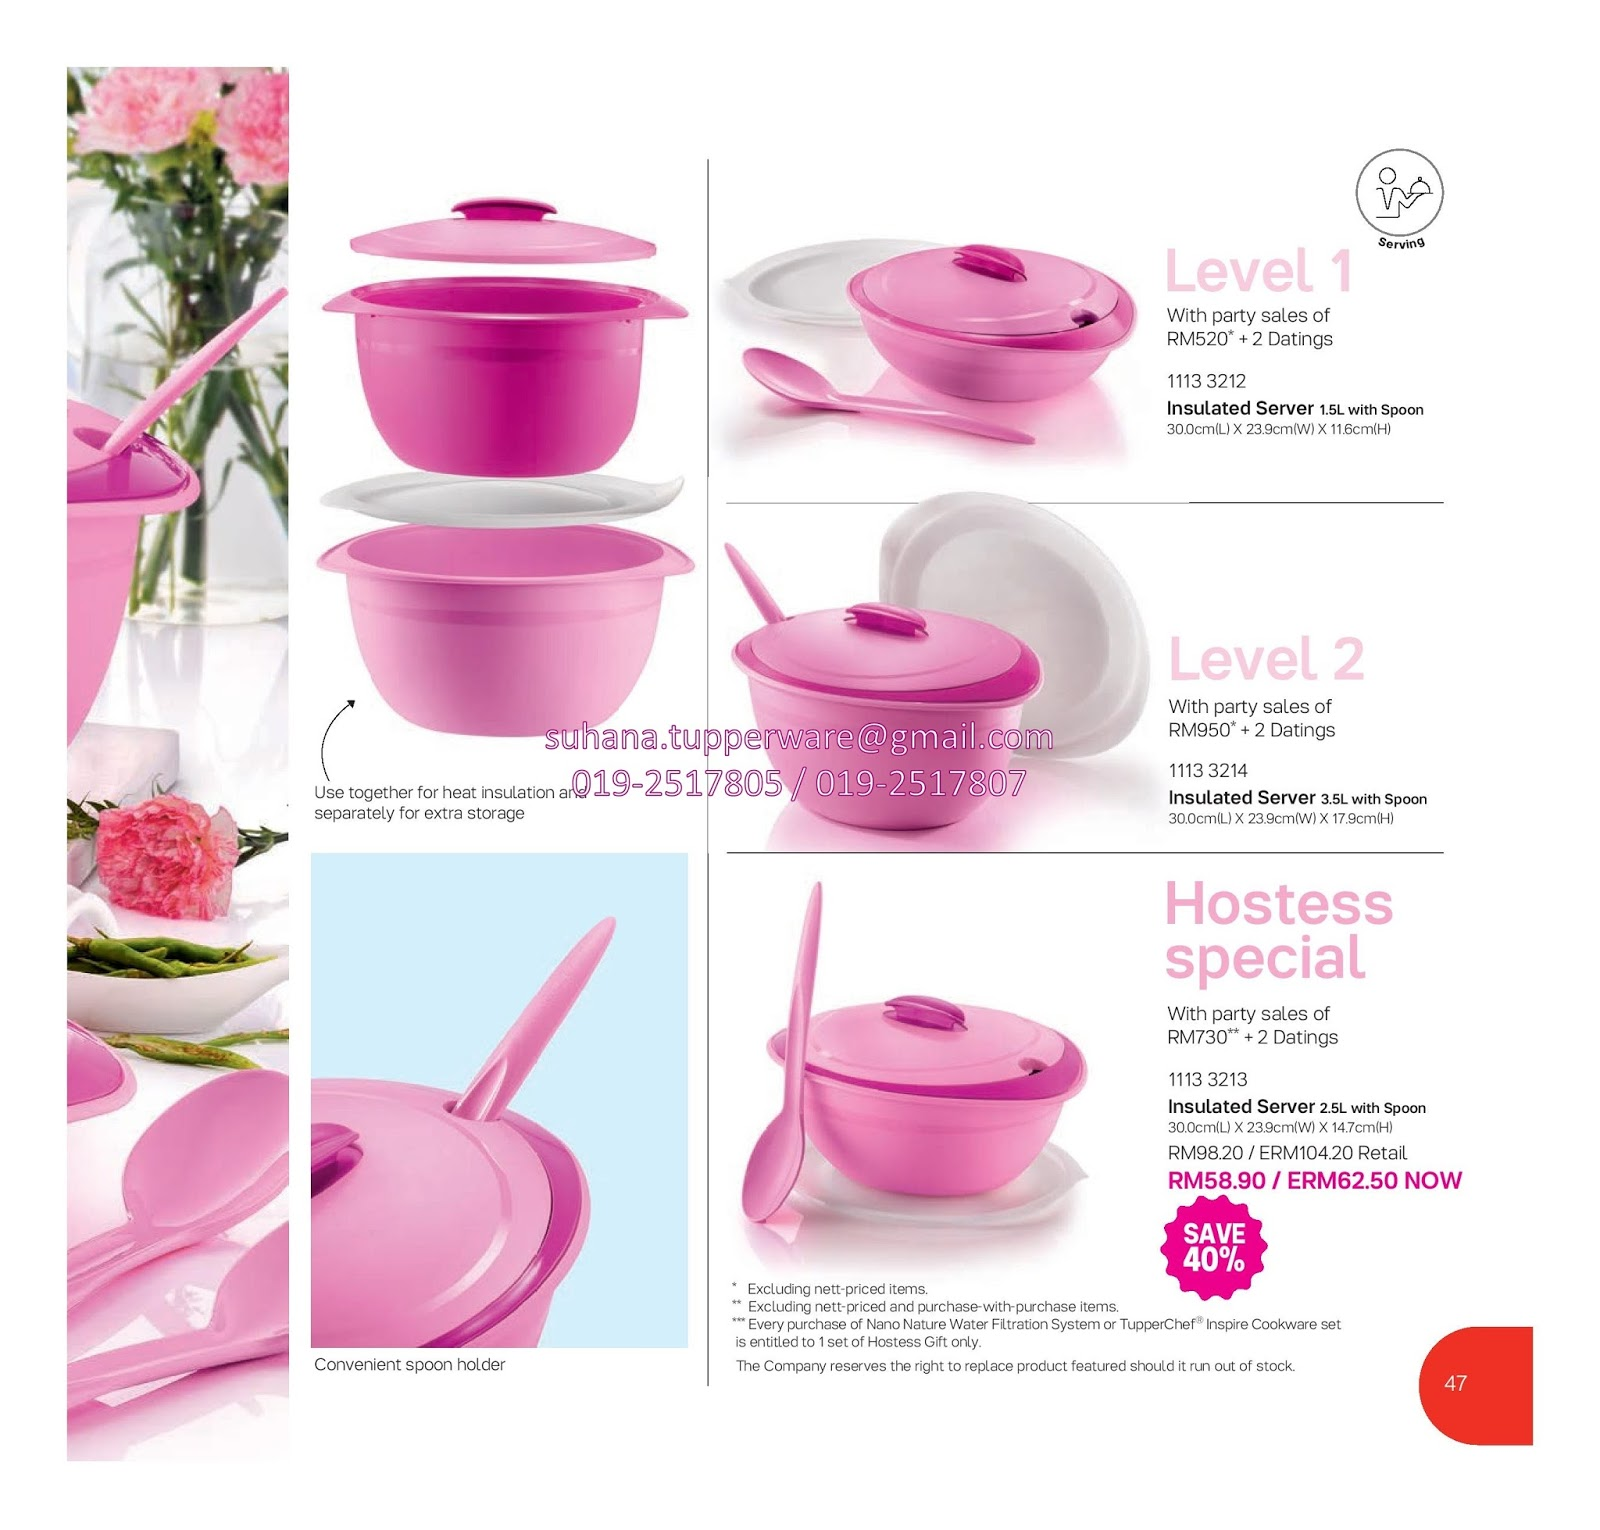 tupperware brands malaysia online catalogue collection business opportunity catalogue. Black Bedroom Furniture Sets. Home Design Ideas